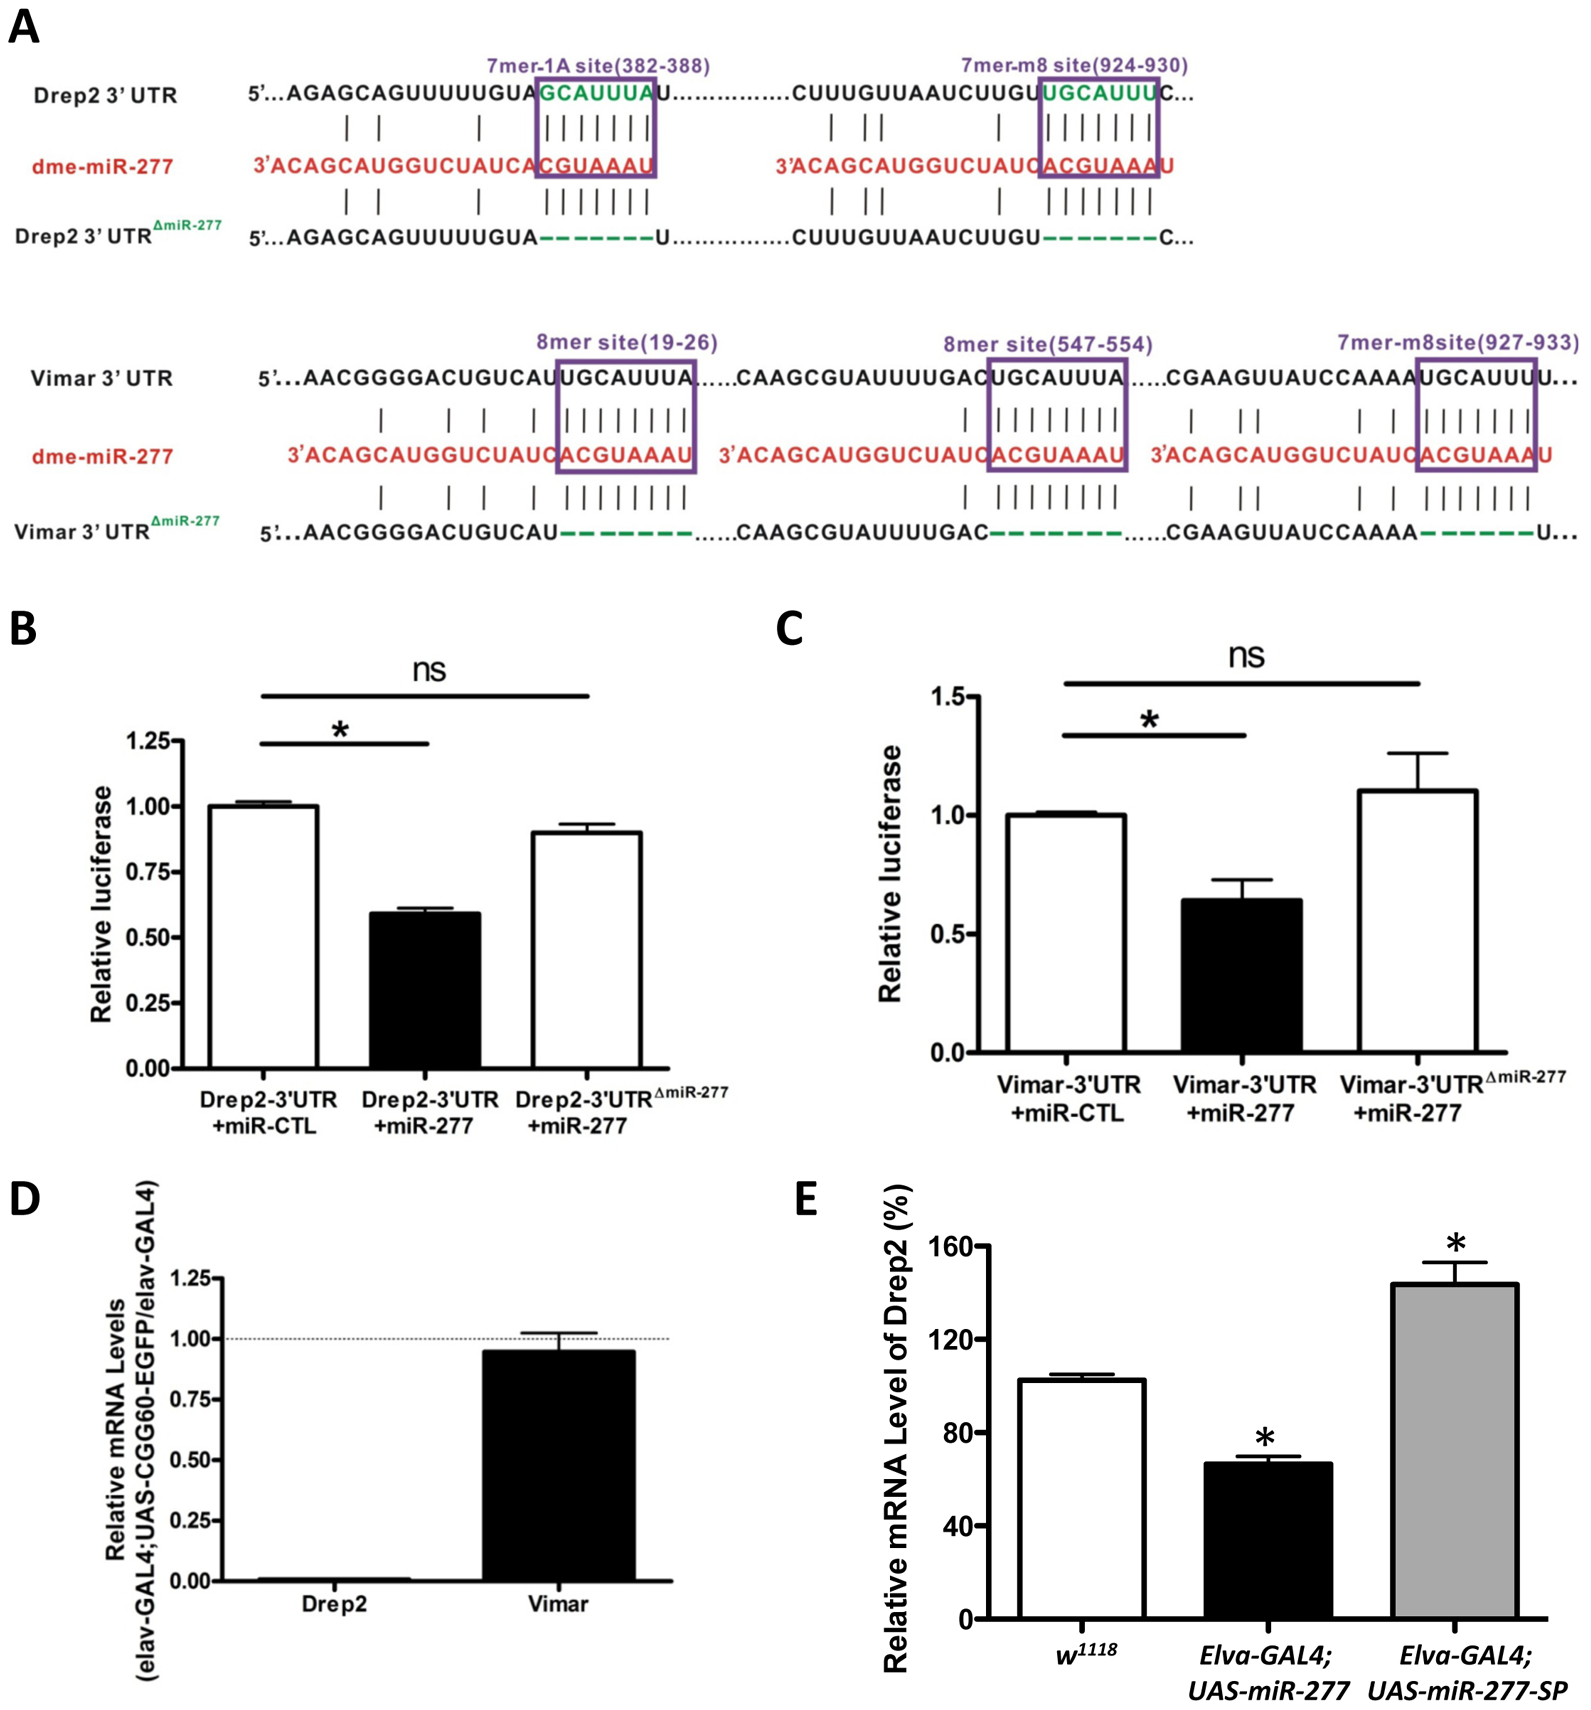 MiR-277 regulates the expression of Drep-2 and Vimar post-transcriptionally.